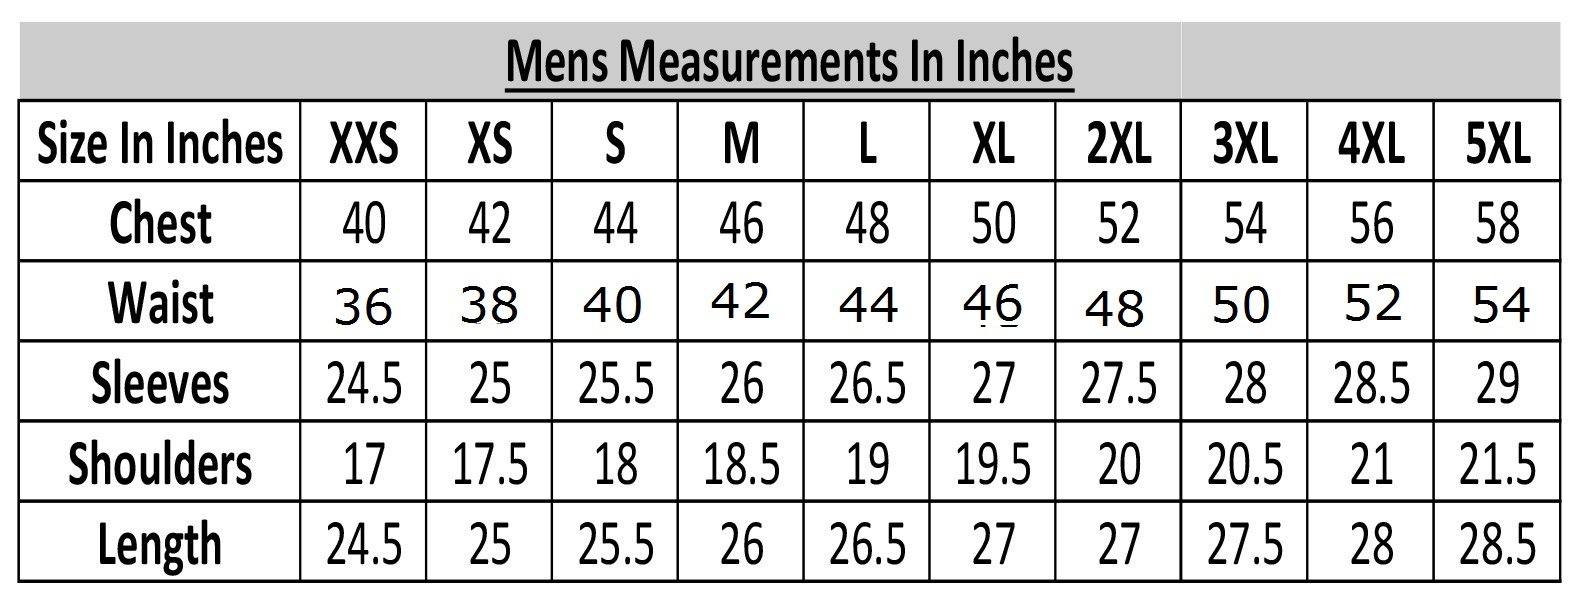 mens measurements in inches